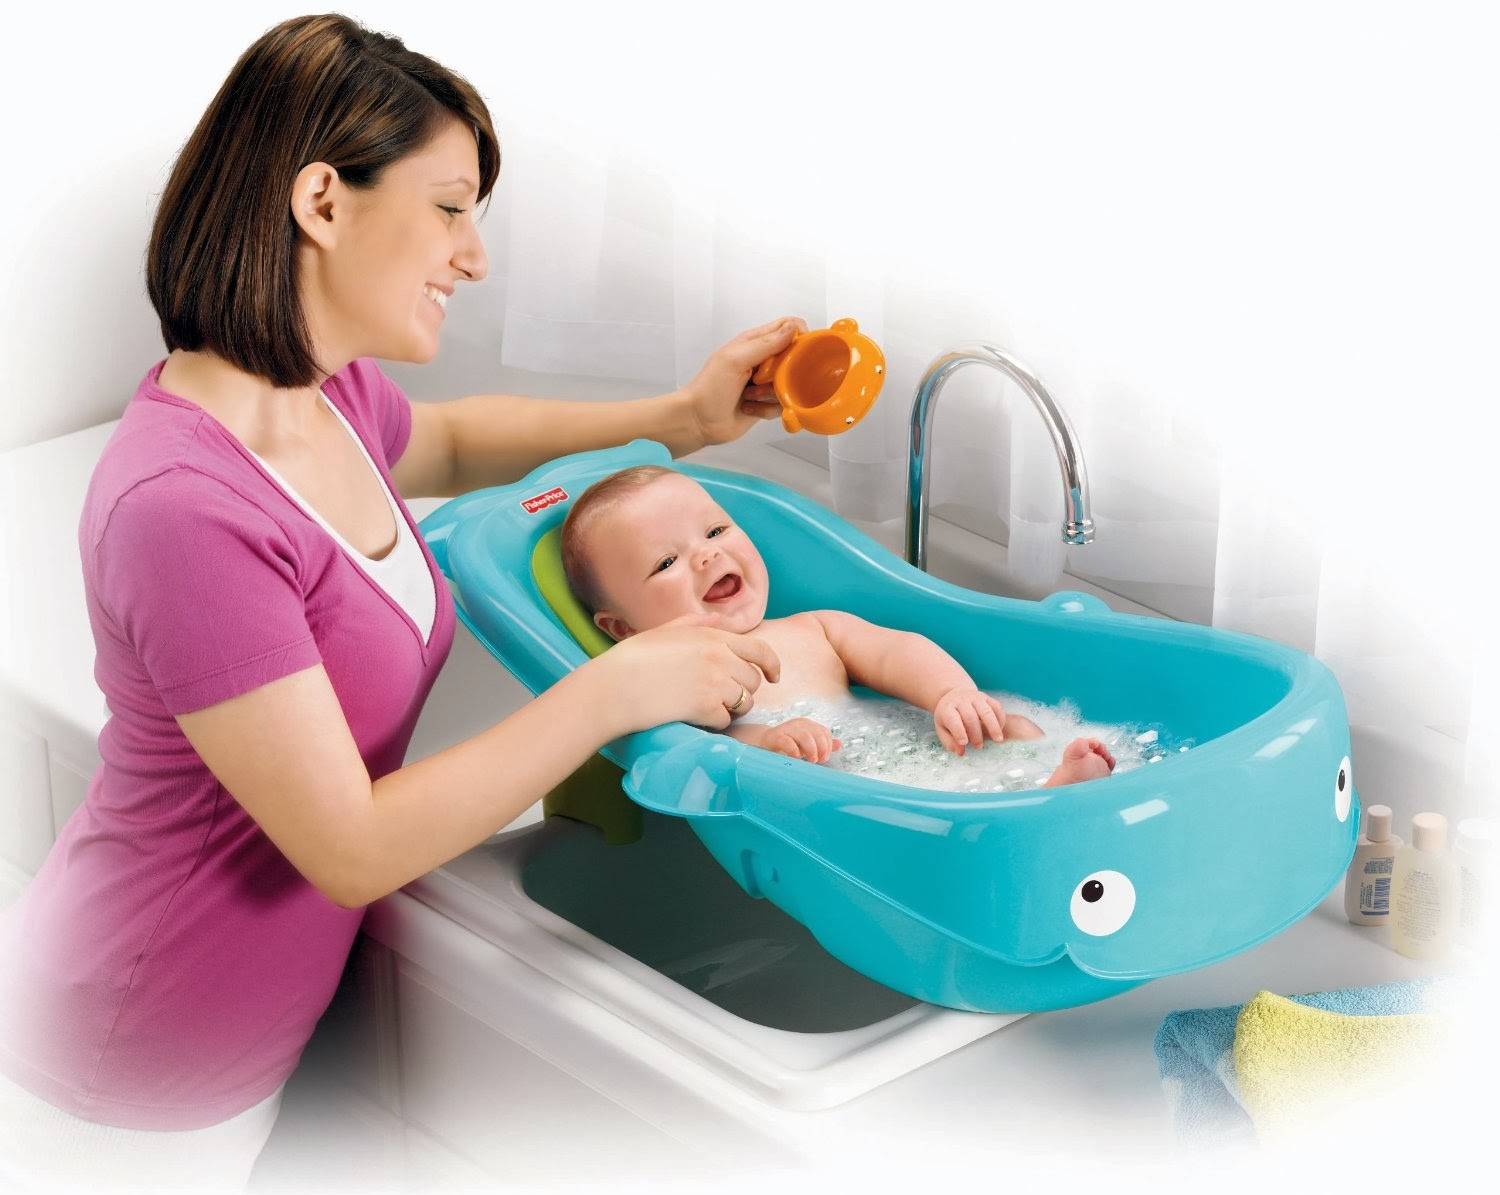 Baby bath chairs for the tub - Baby Will Have A Whale Of A Good Time In This Adorable Bath Center That Grows From Infant To Toddler A Contoured Baby Stopper Insert Keeps Your Infant